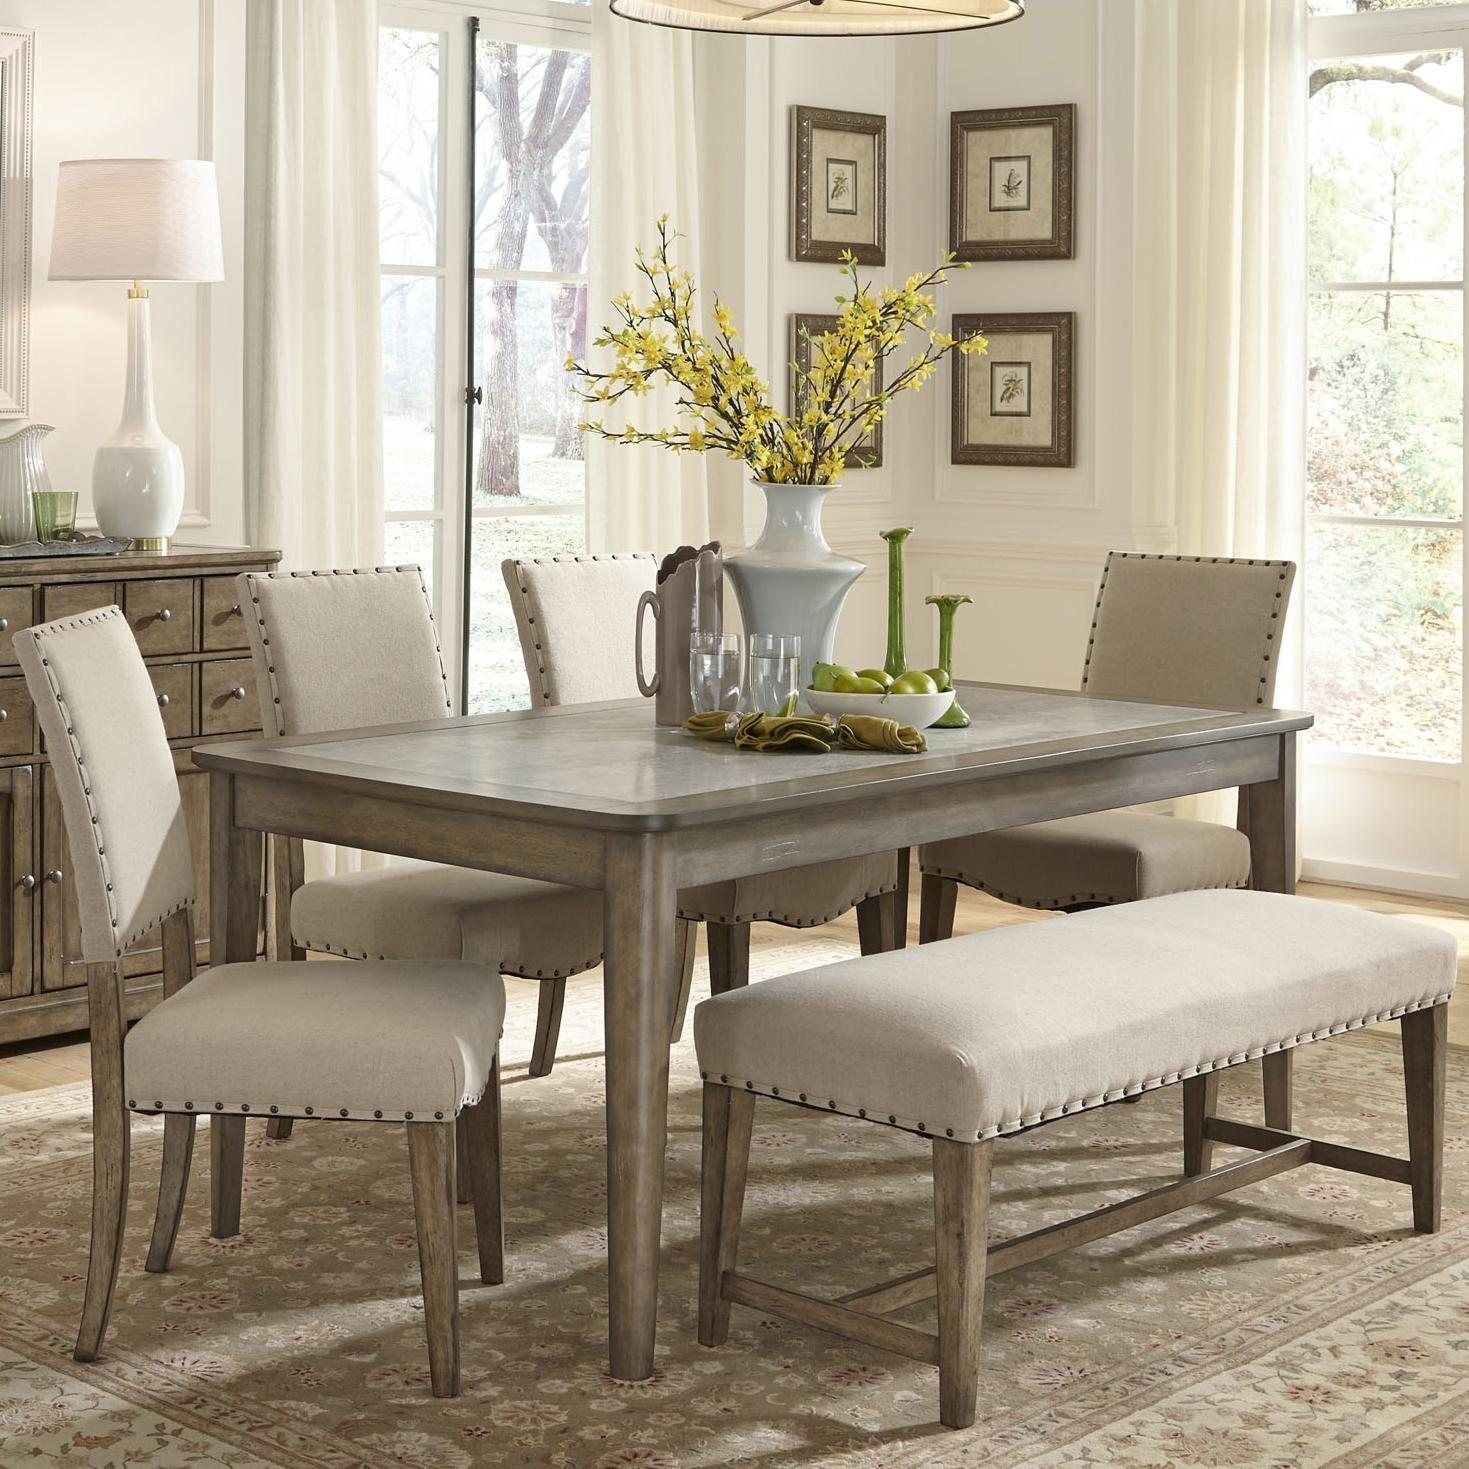 Dining room table with upholstered bench  Dining Room Table With Upholstered Bench  Dining Room Furniture